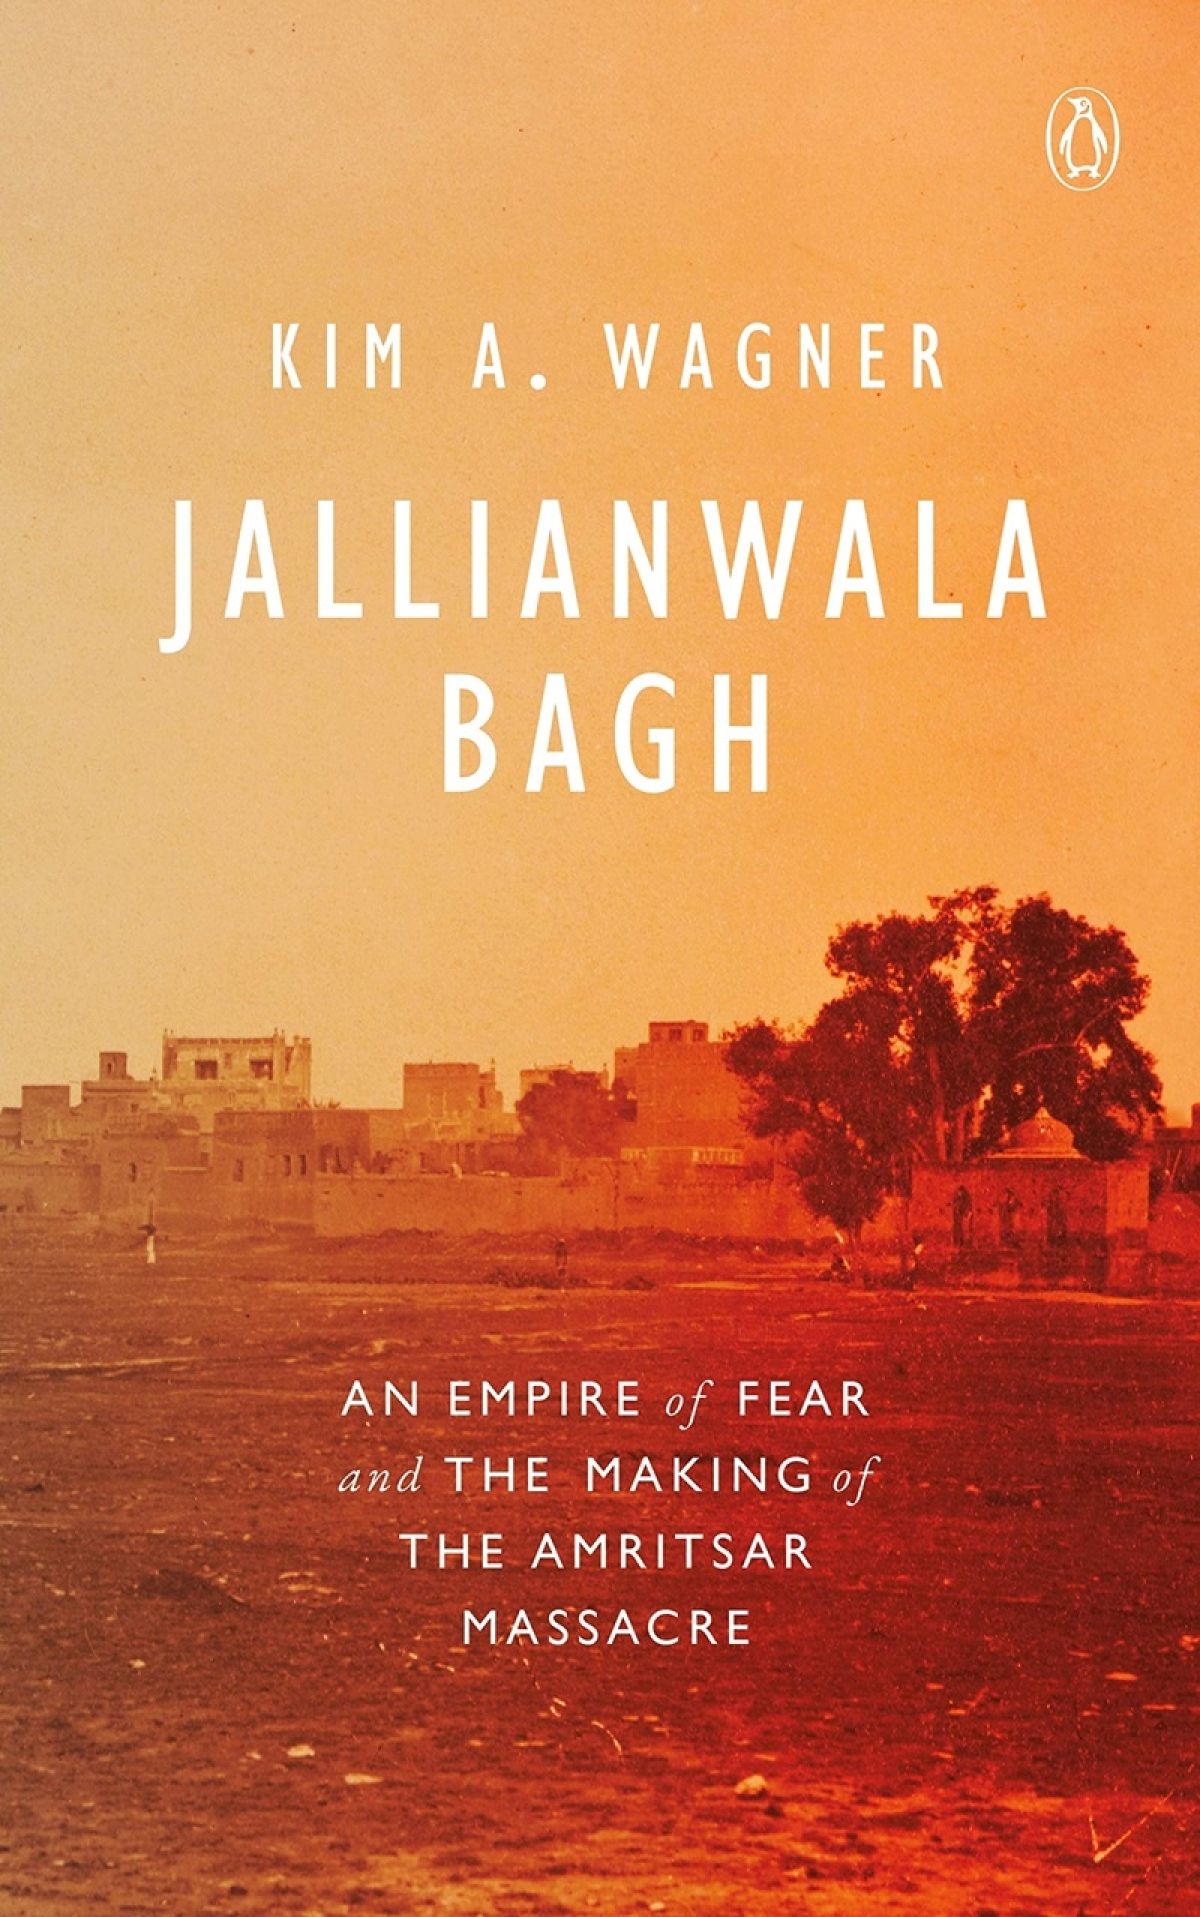 Doomed in Dubai to Jallianwala Bagh: 5 books that are just out